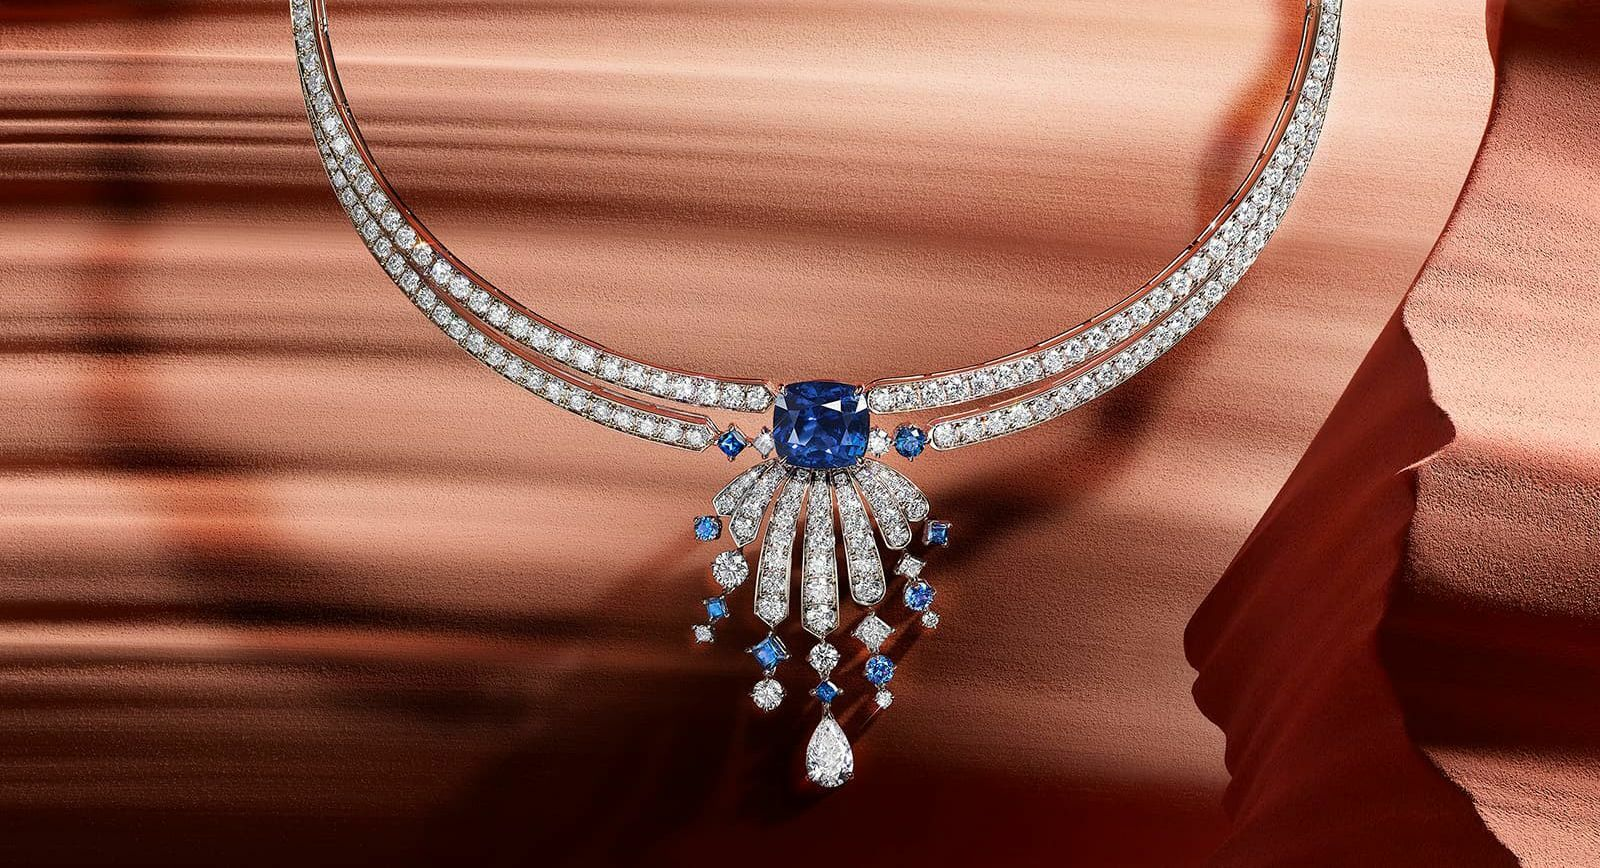 Piaget sapphire and diamond necklace